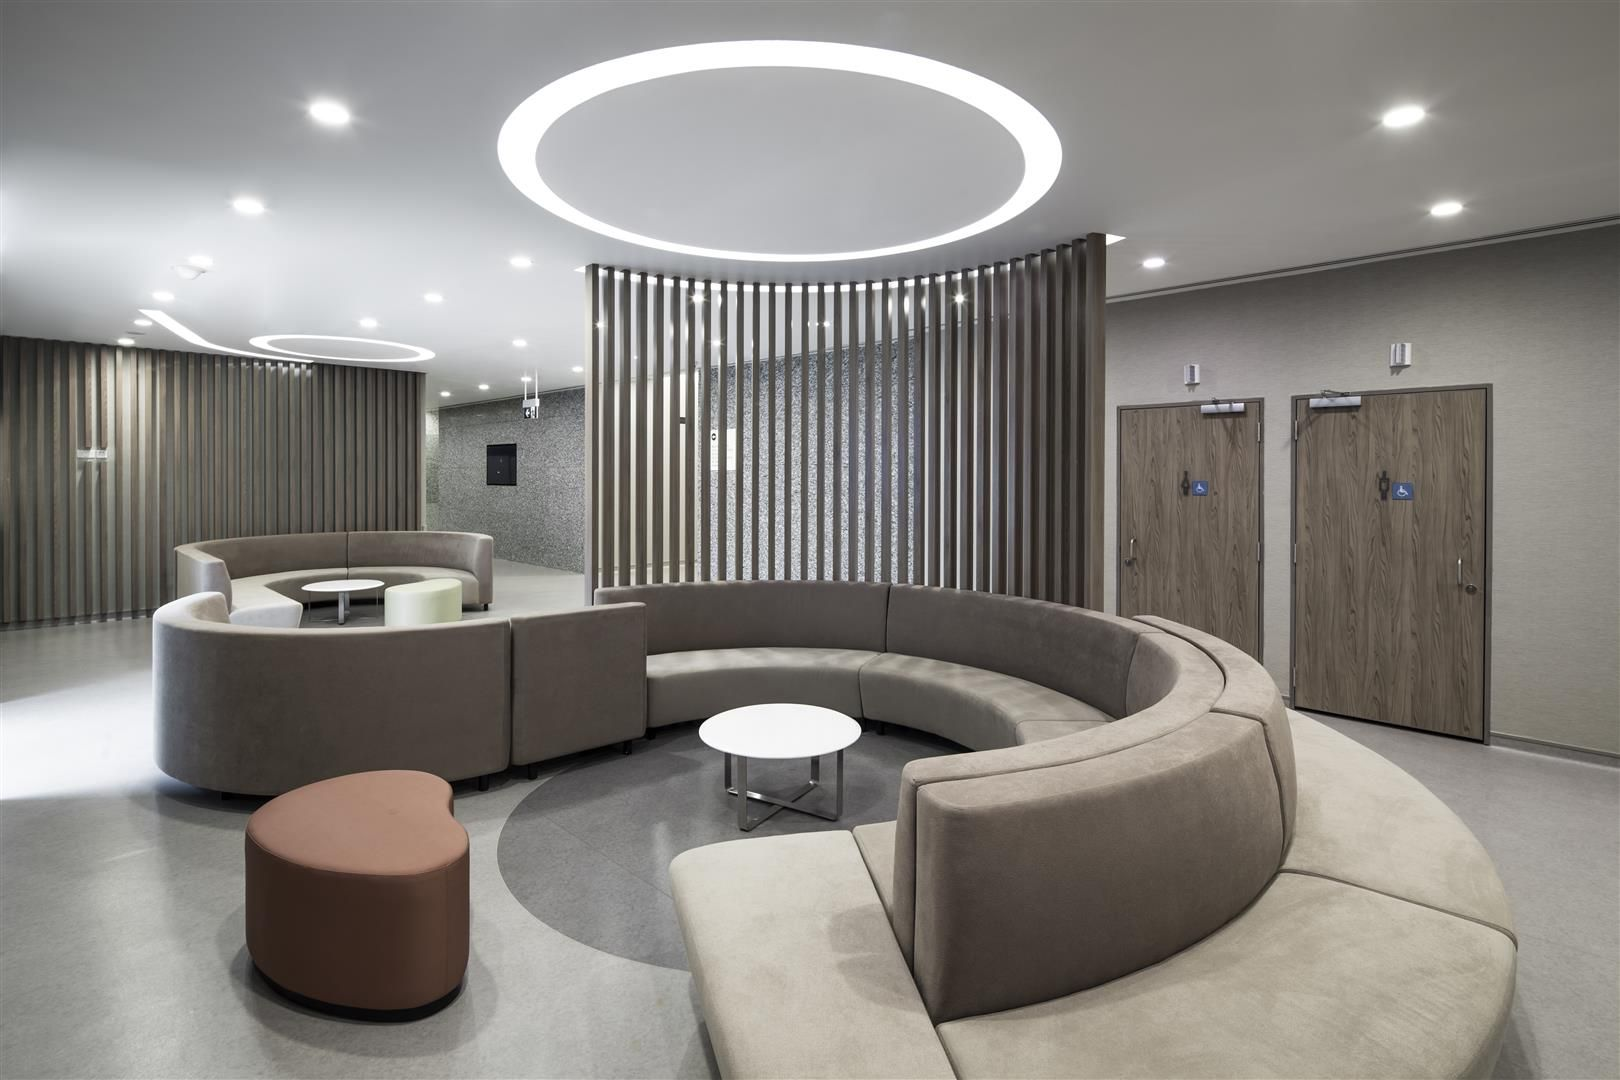 office seating area. Seating Area At The Farrer Park Hospital Singapore By DP Design Office